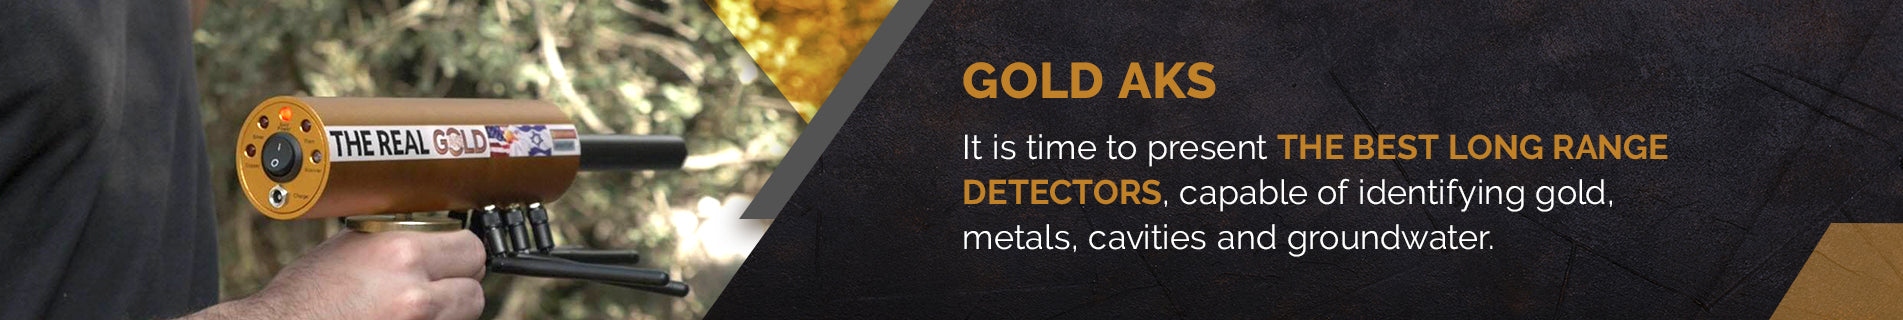 Gold AKS Long Range Metal Detectors | Free US Shipping | Secure Payment